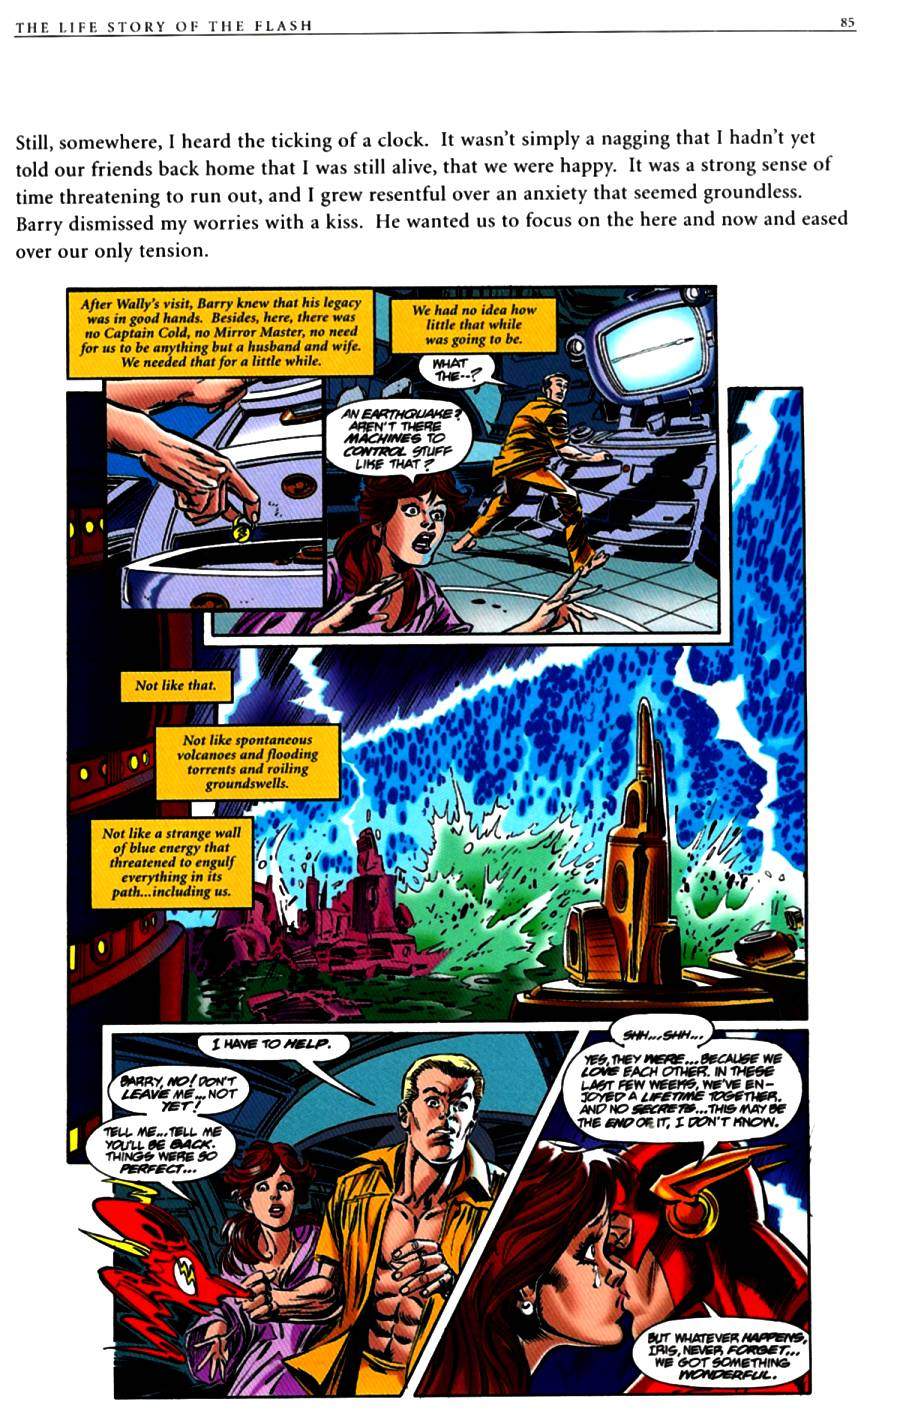 Read online The Life Story of the Flash comic -  Issue # Full - 87